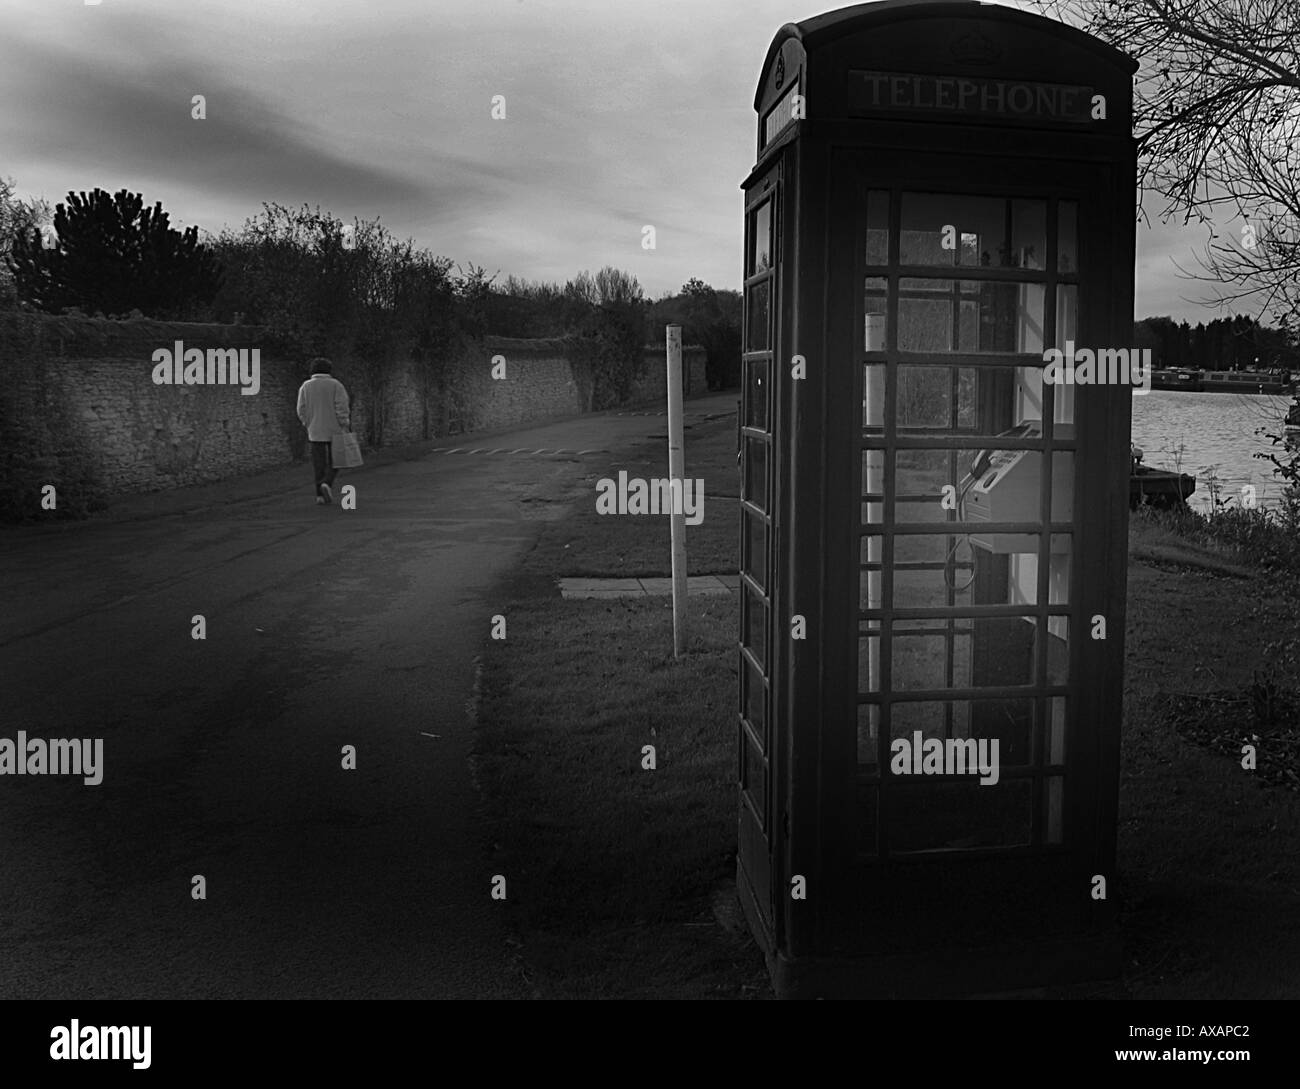 old red phone booth by a lake in uk - Stock Image